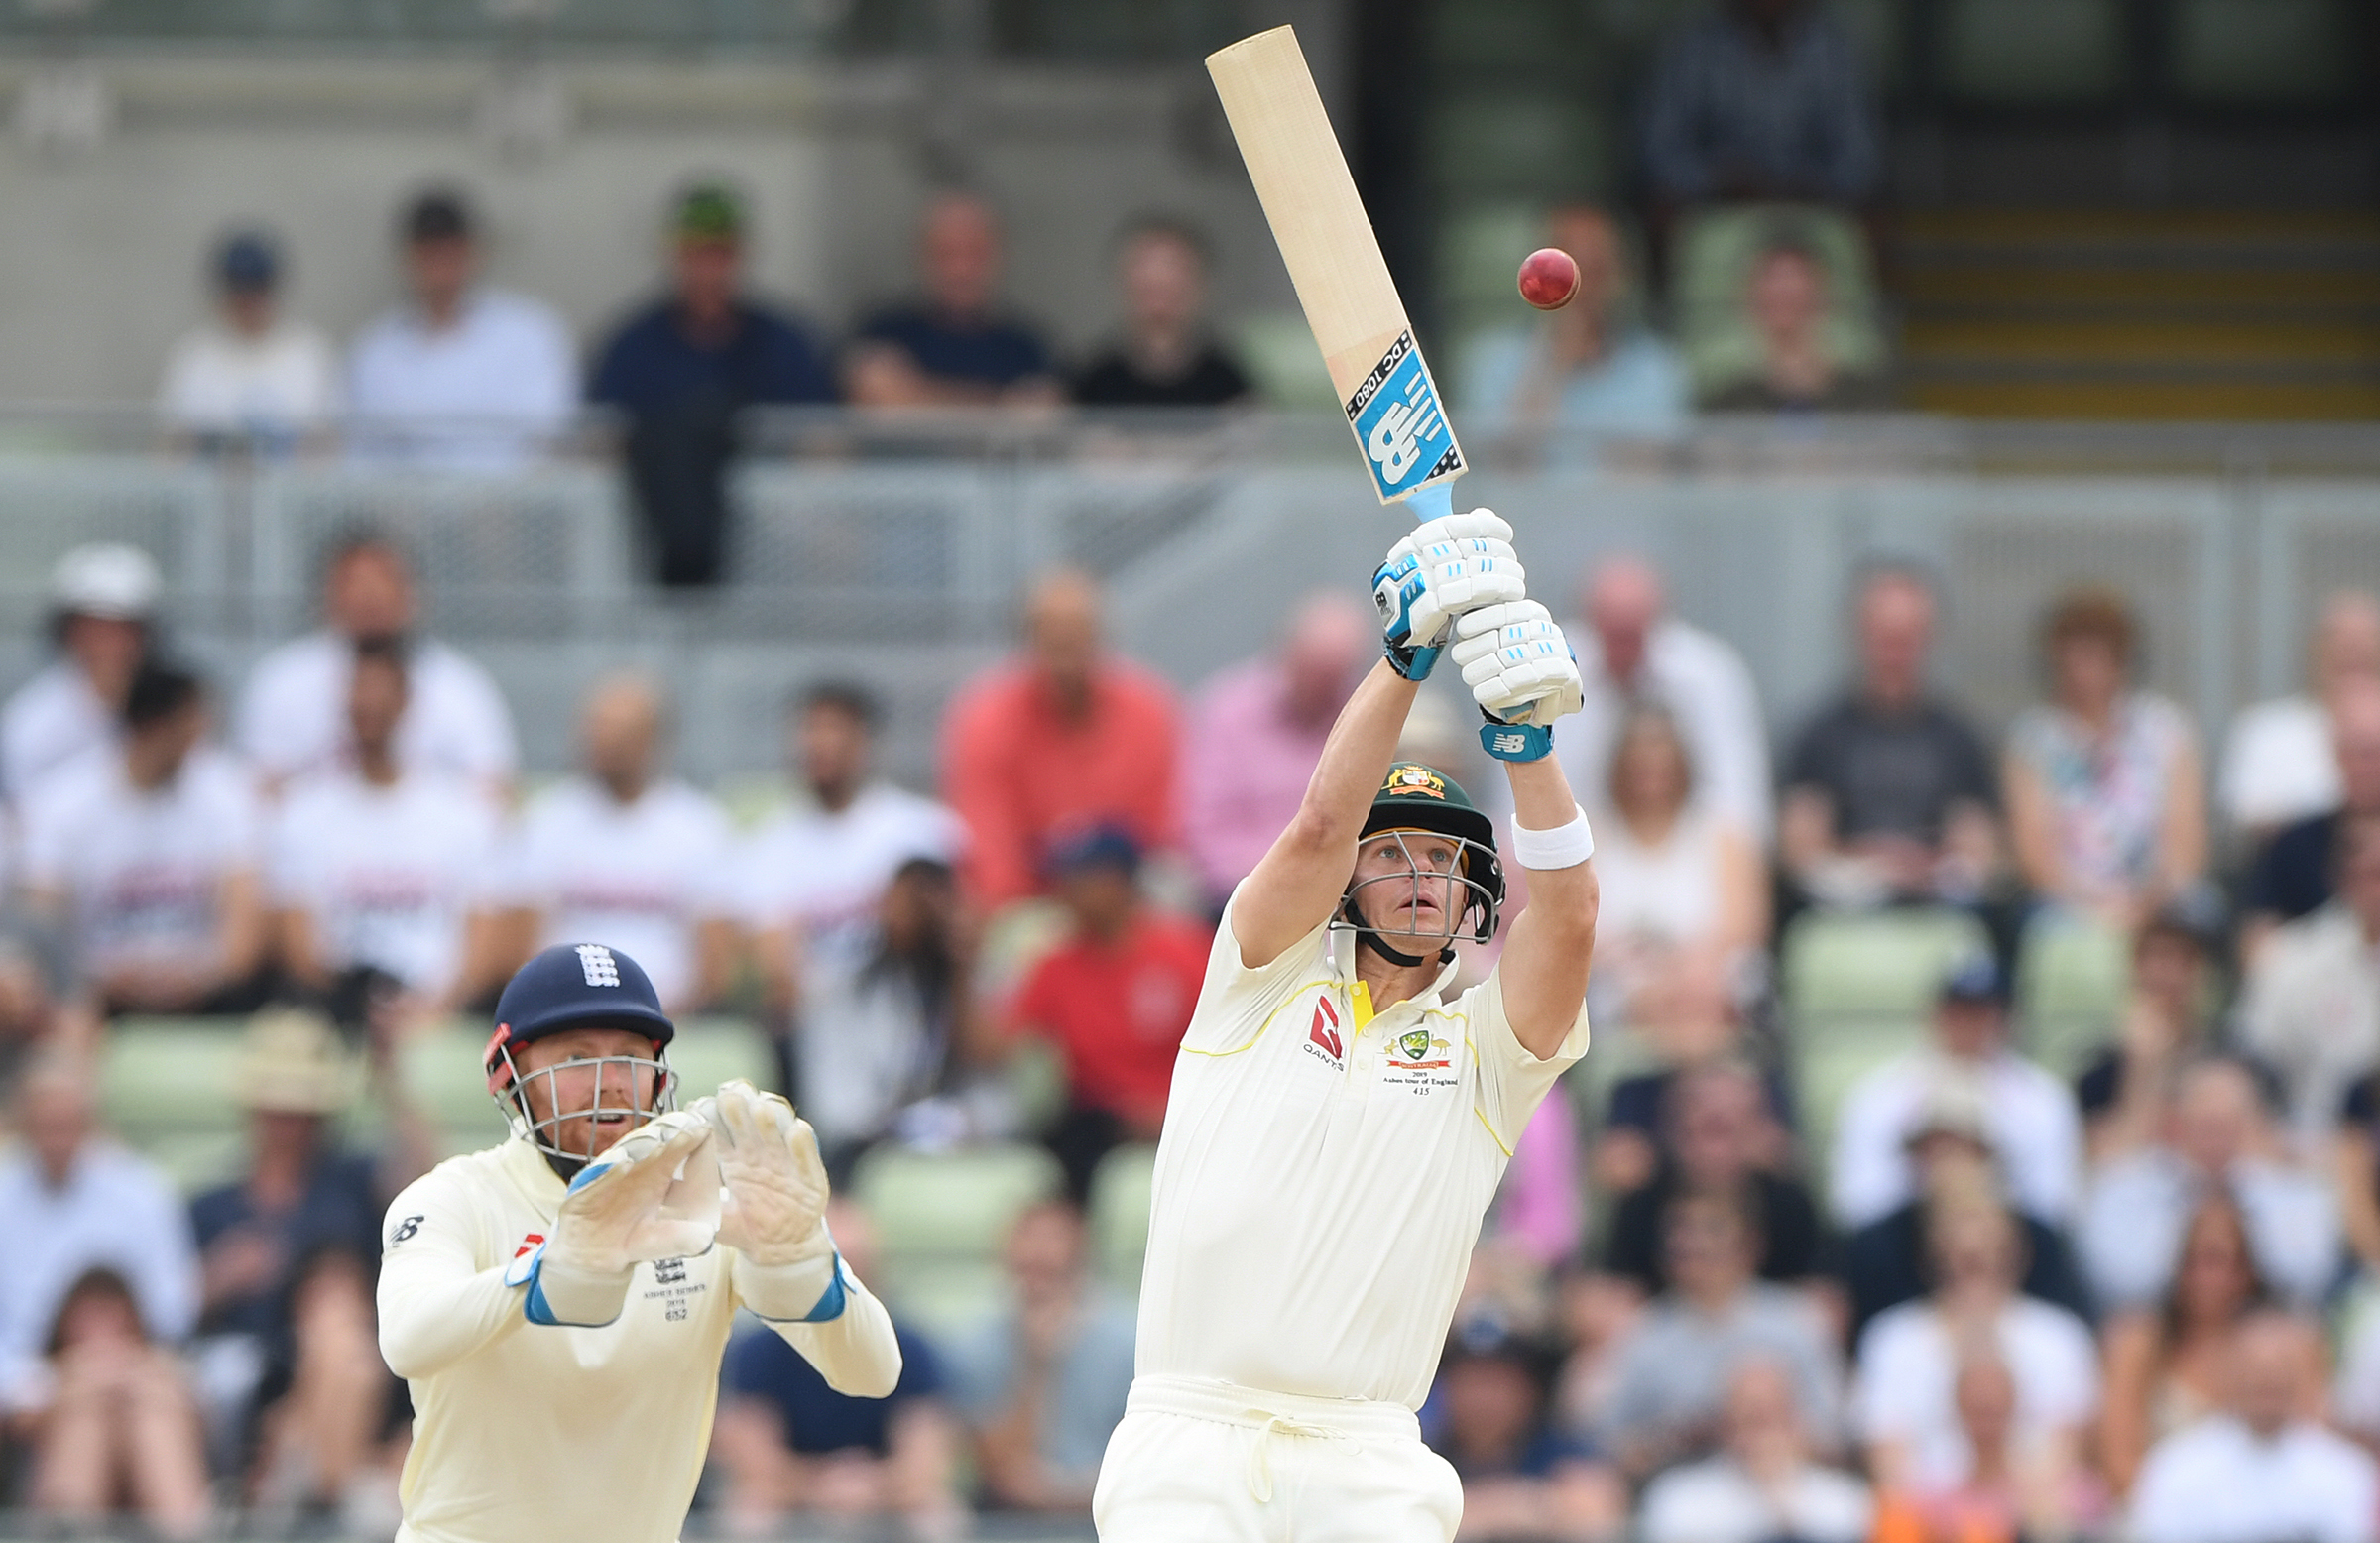 Smith tried to reach a wild Moeen Ali beamer // Getty